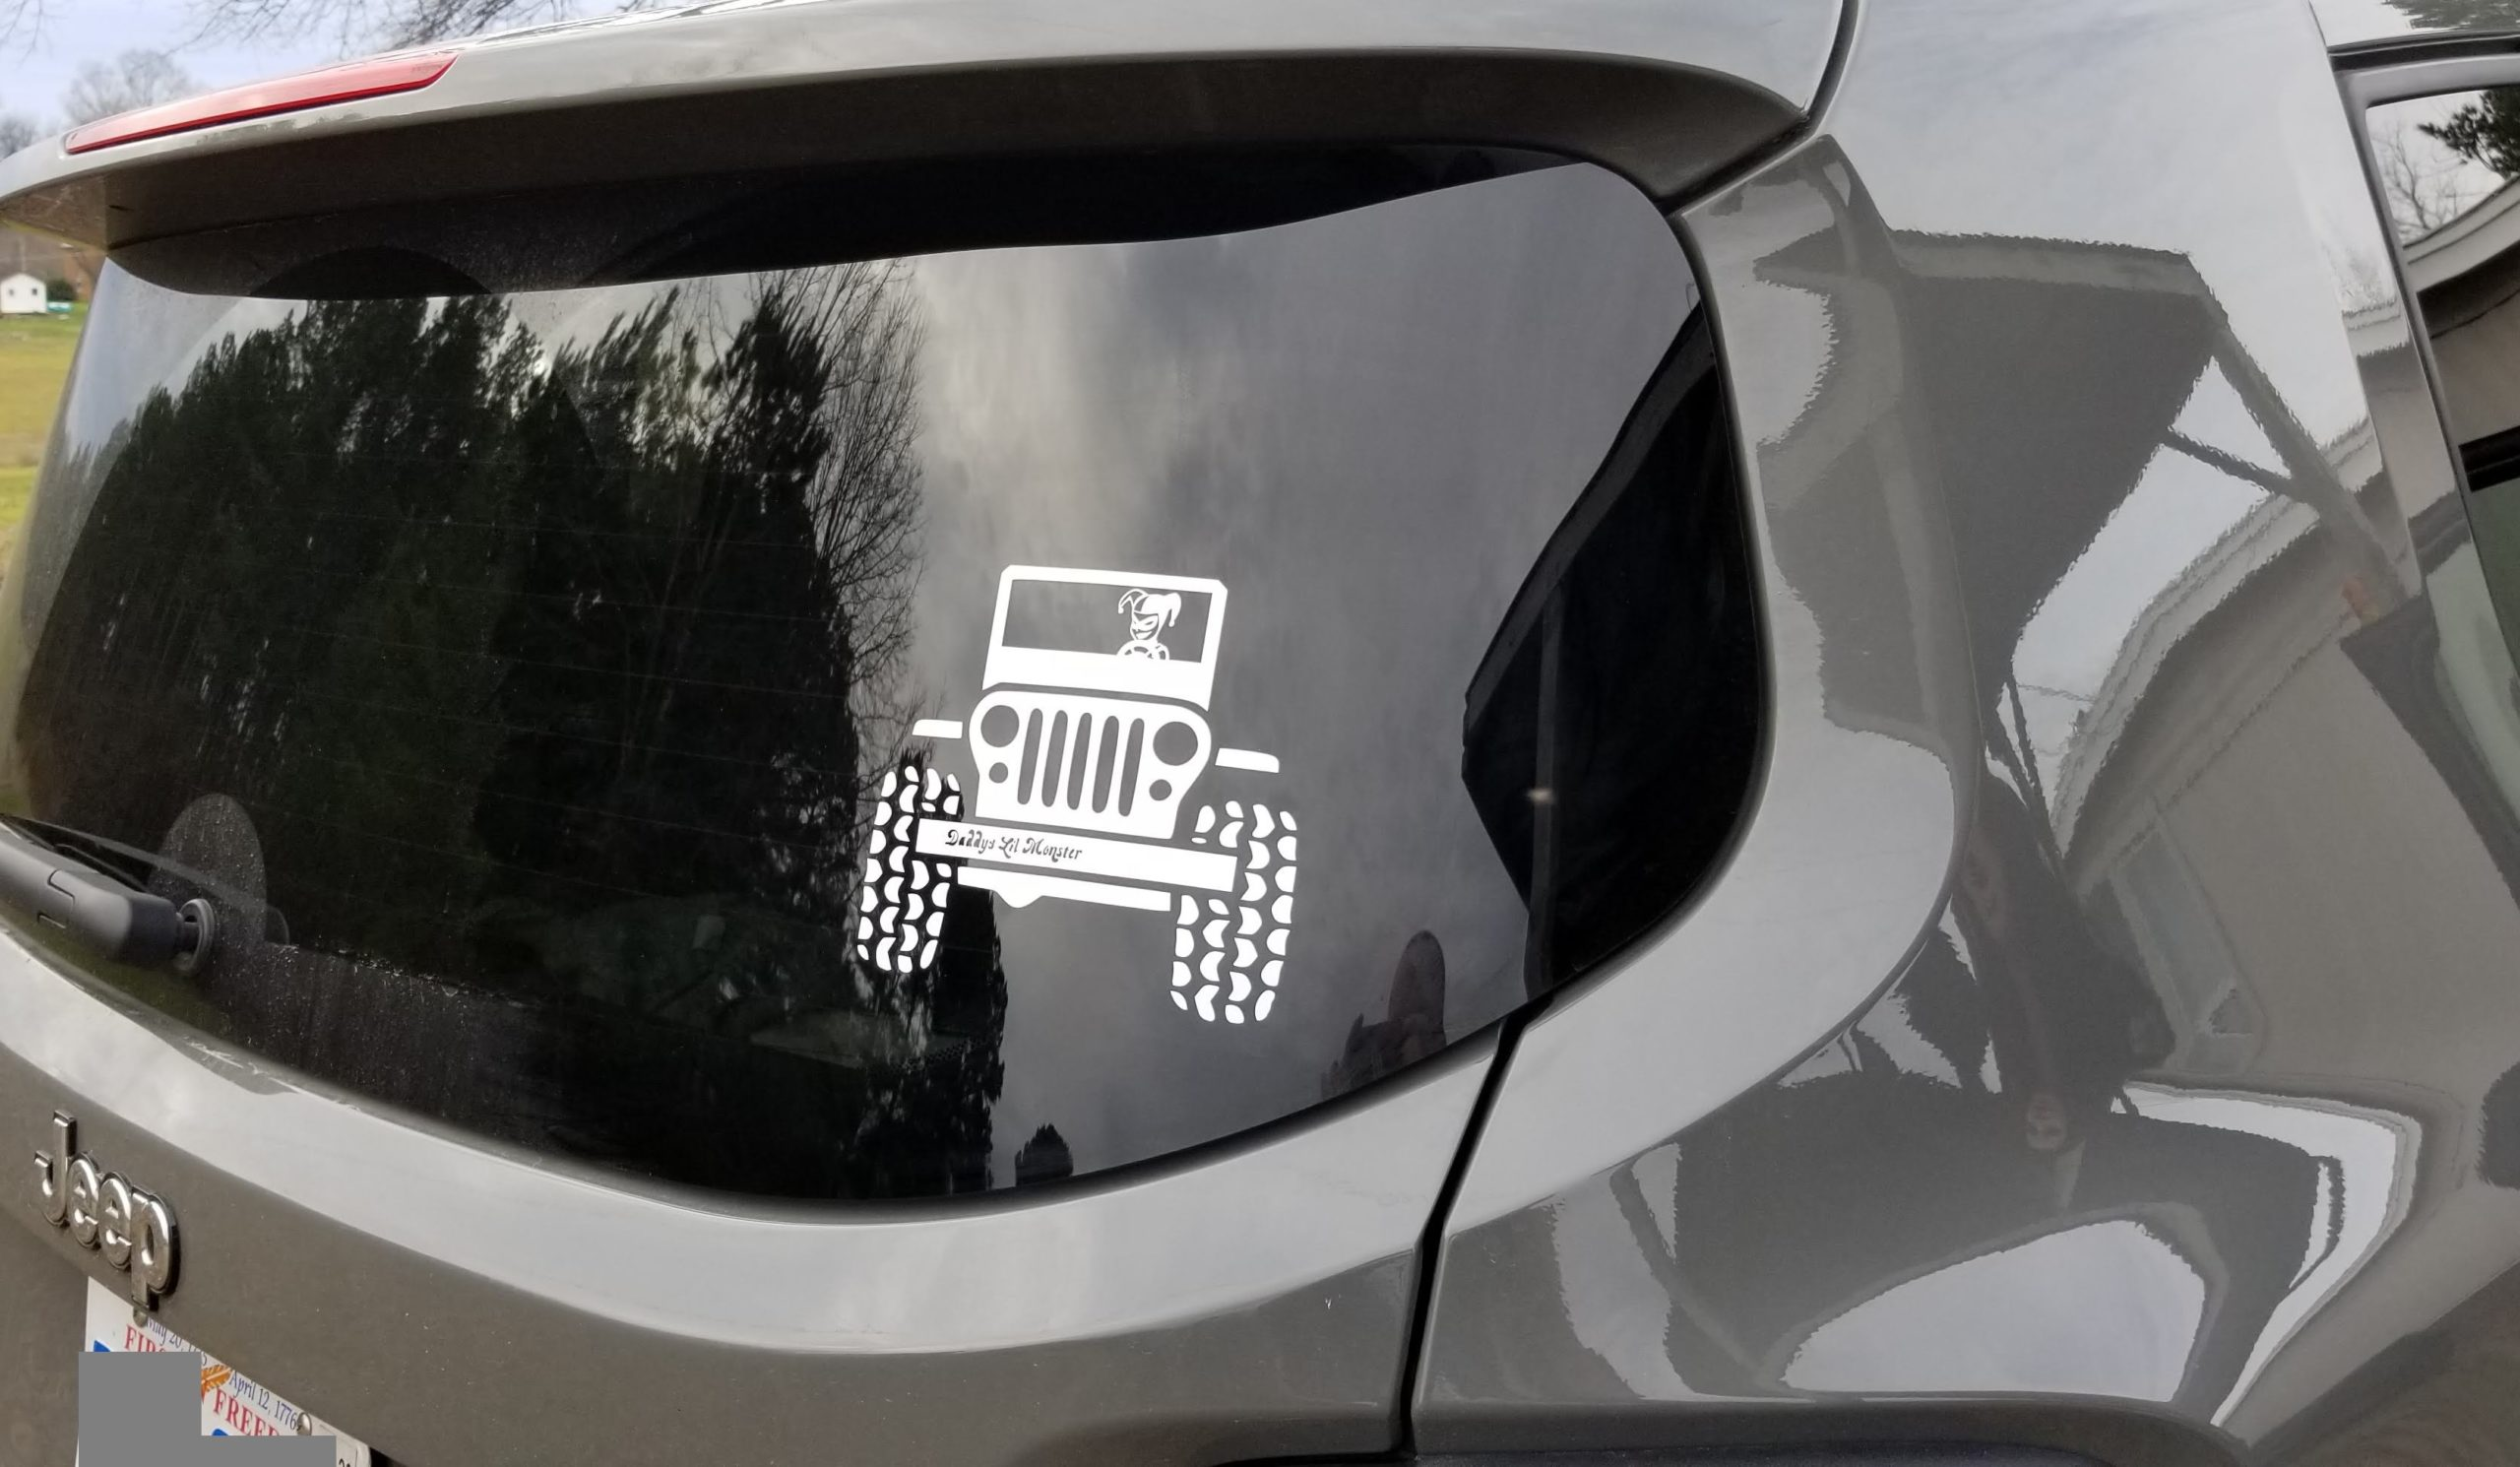 Harley Quinn driving jeep decal